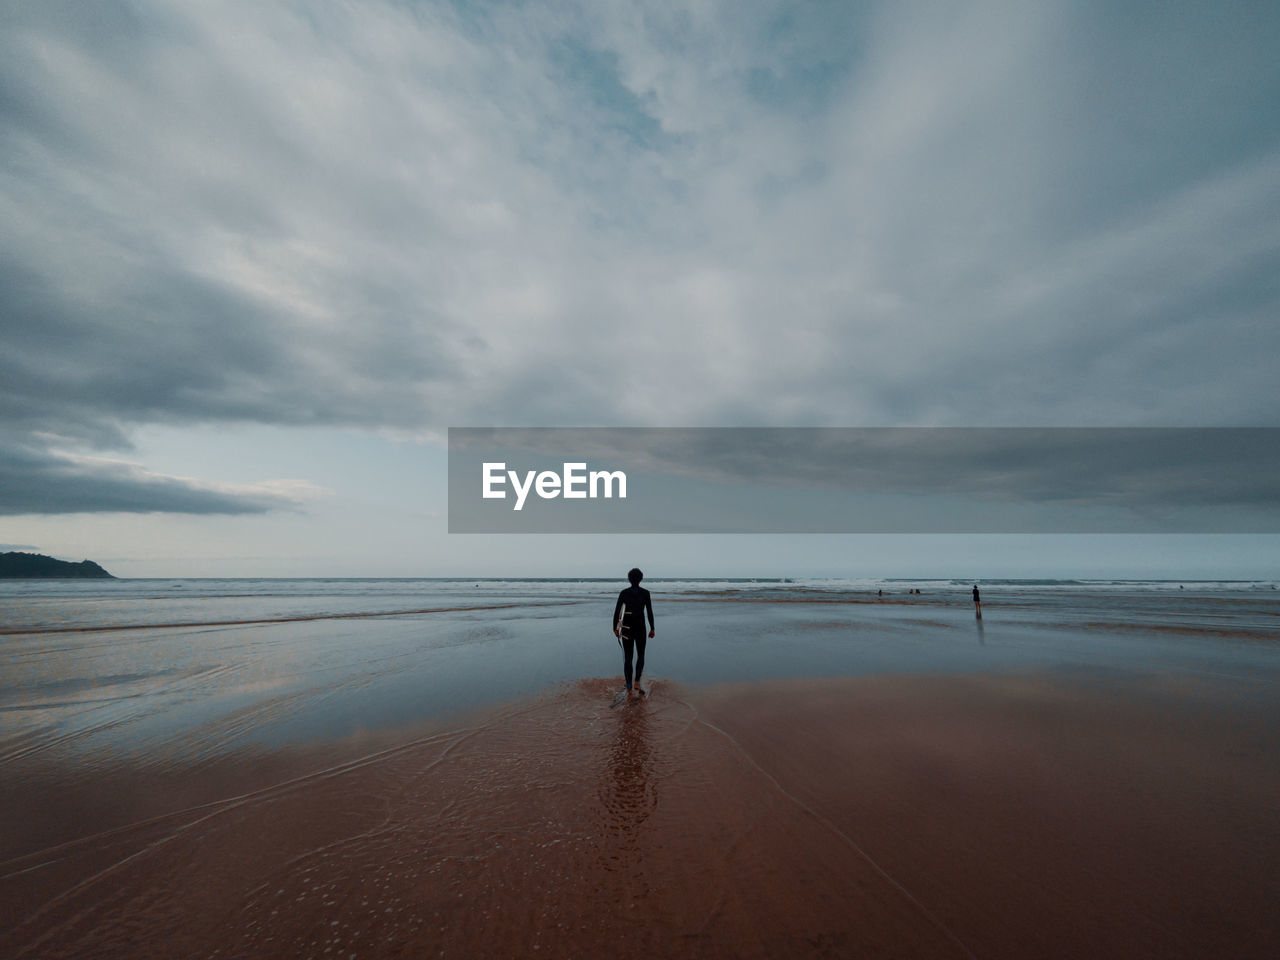 sky, sea, cloud - sky, water, real people, beauty in nature, land, beach, horizon over water, rear view, scenics - nature, horizon, one person, standing, nature, full length, lifestyles, tranquil scene, tranquility, looking at view